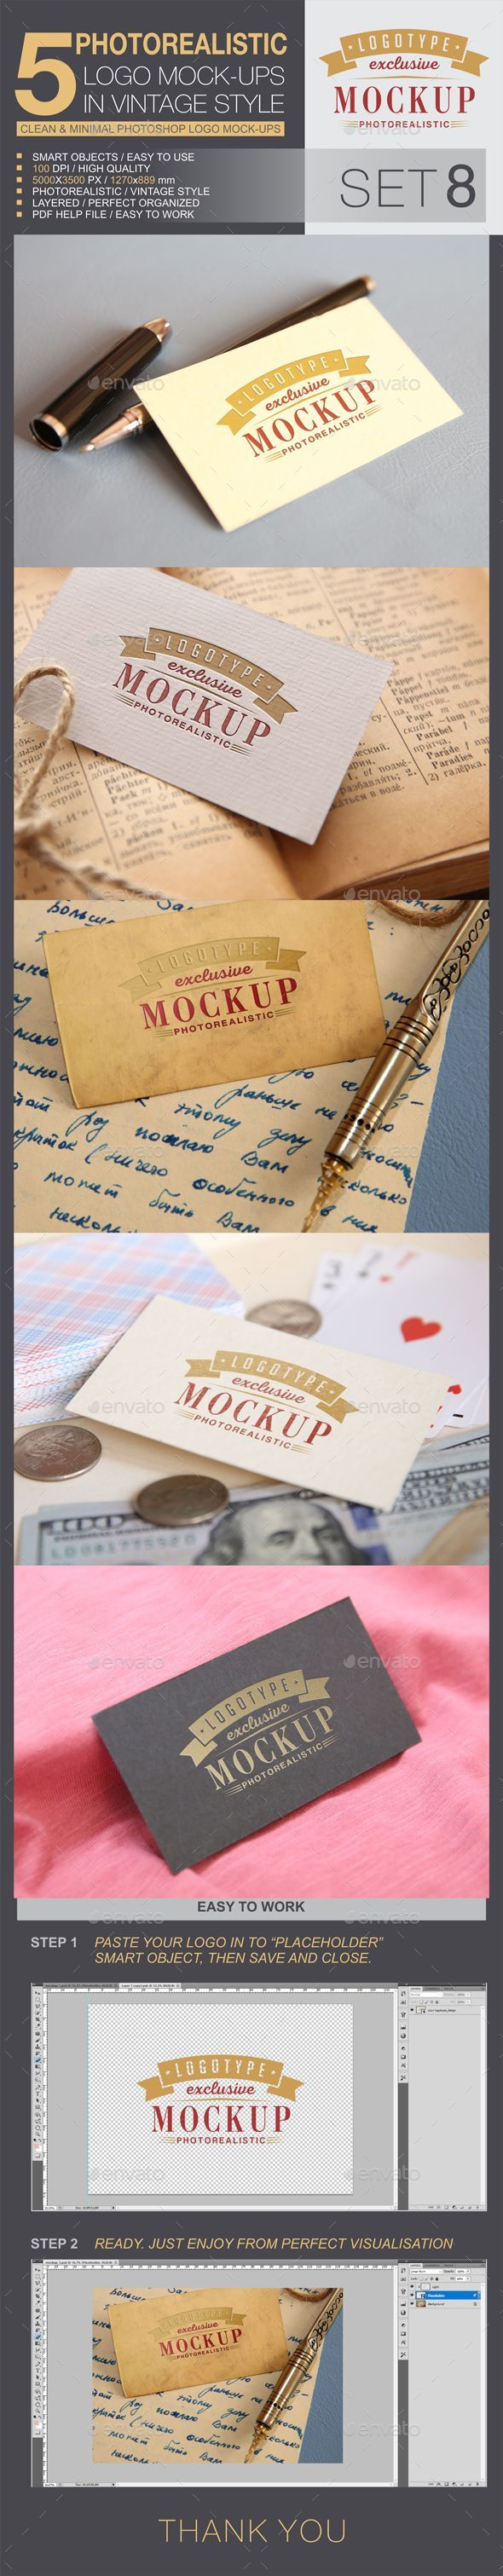 5 Logo Mock-Ups In Vintage Style - Set 8. Professional fully customizable logo m... -